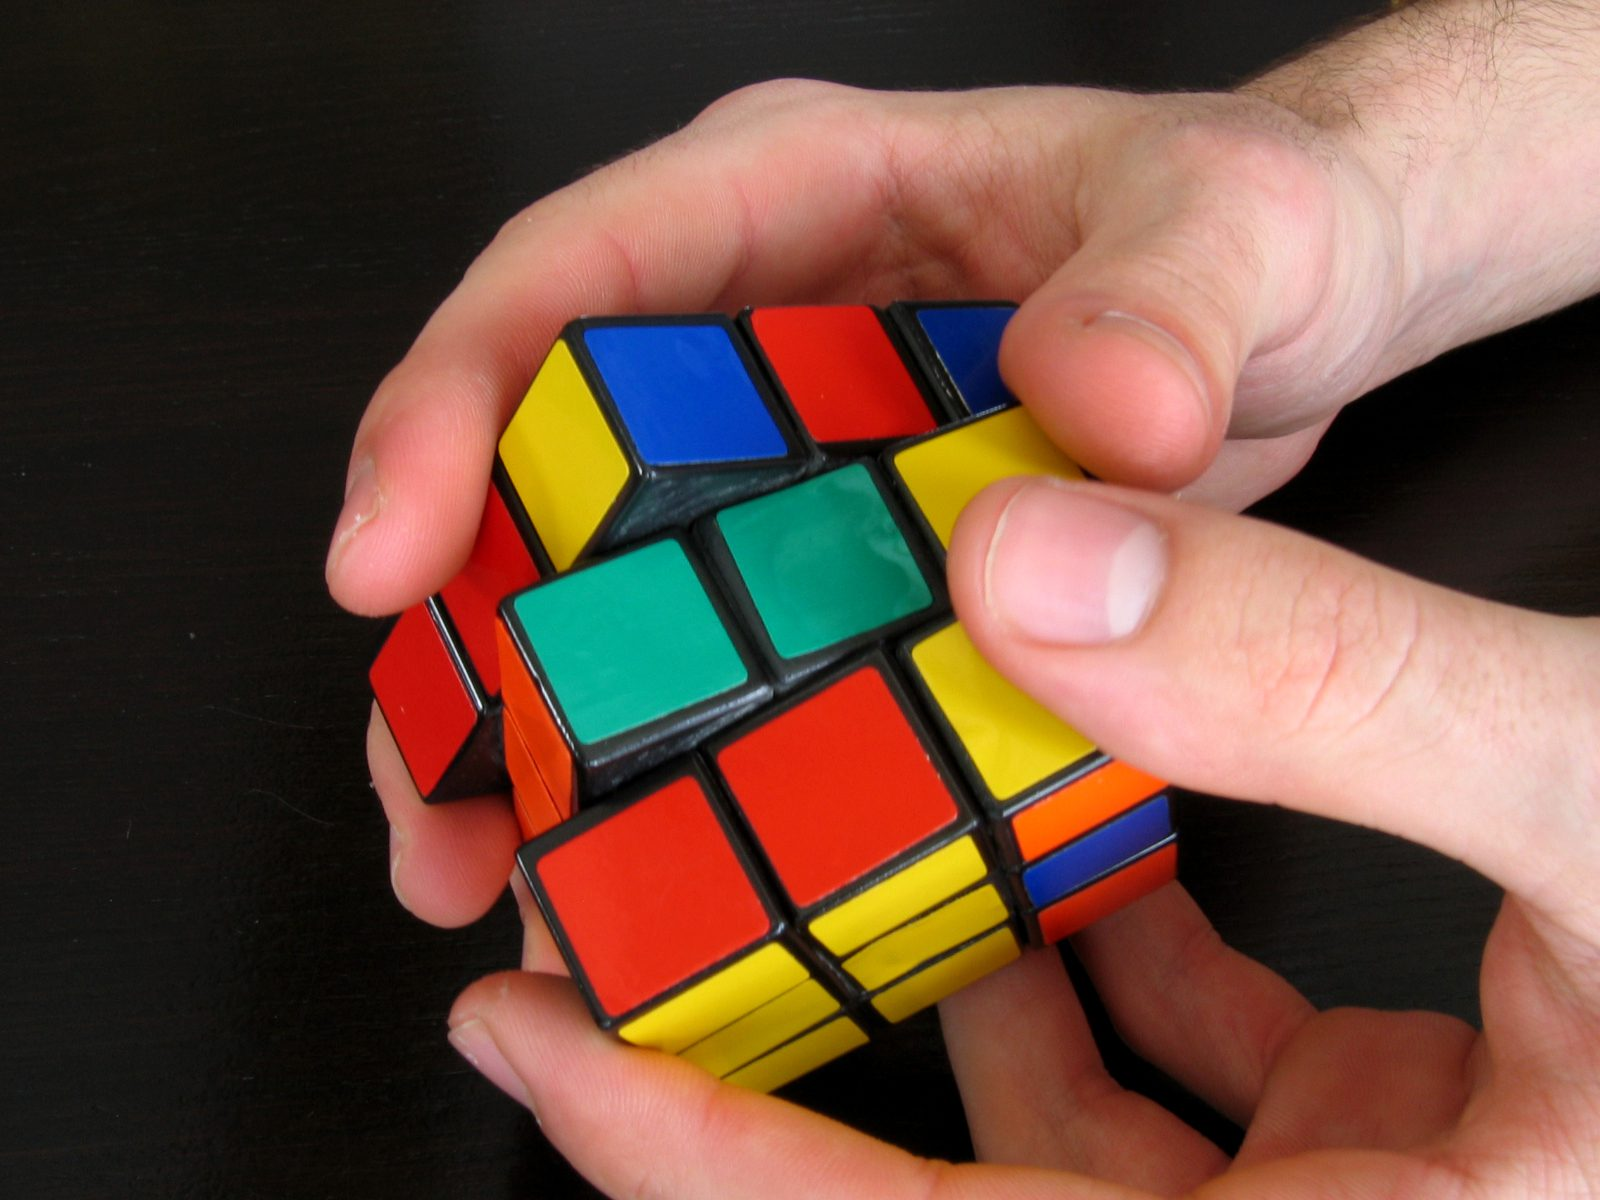 Hands working on a Rubik's cube